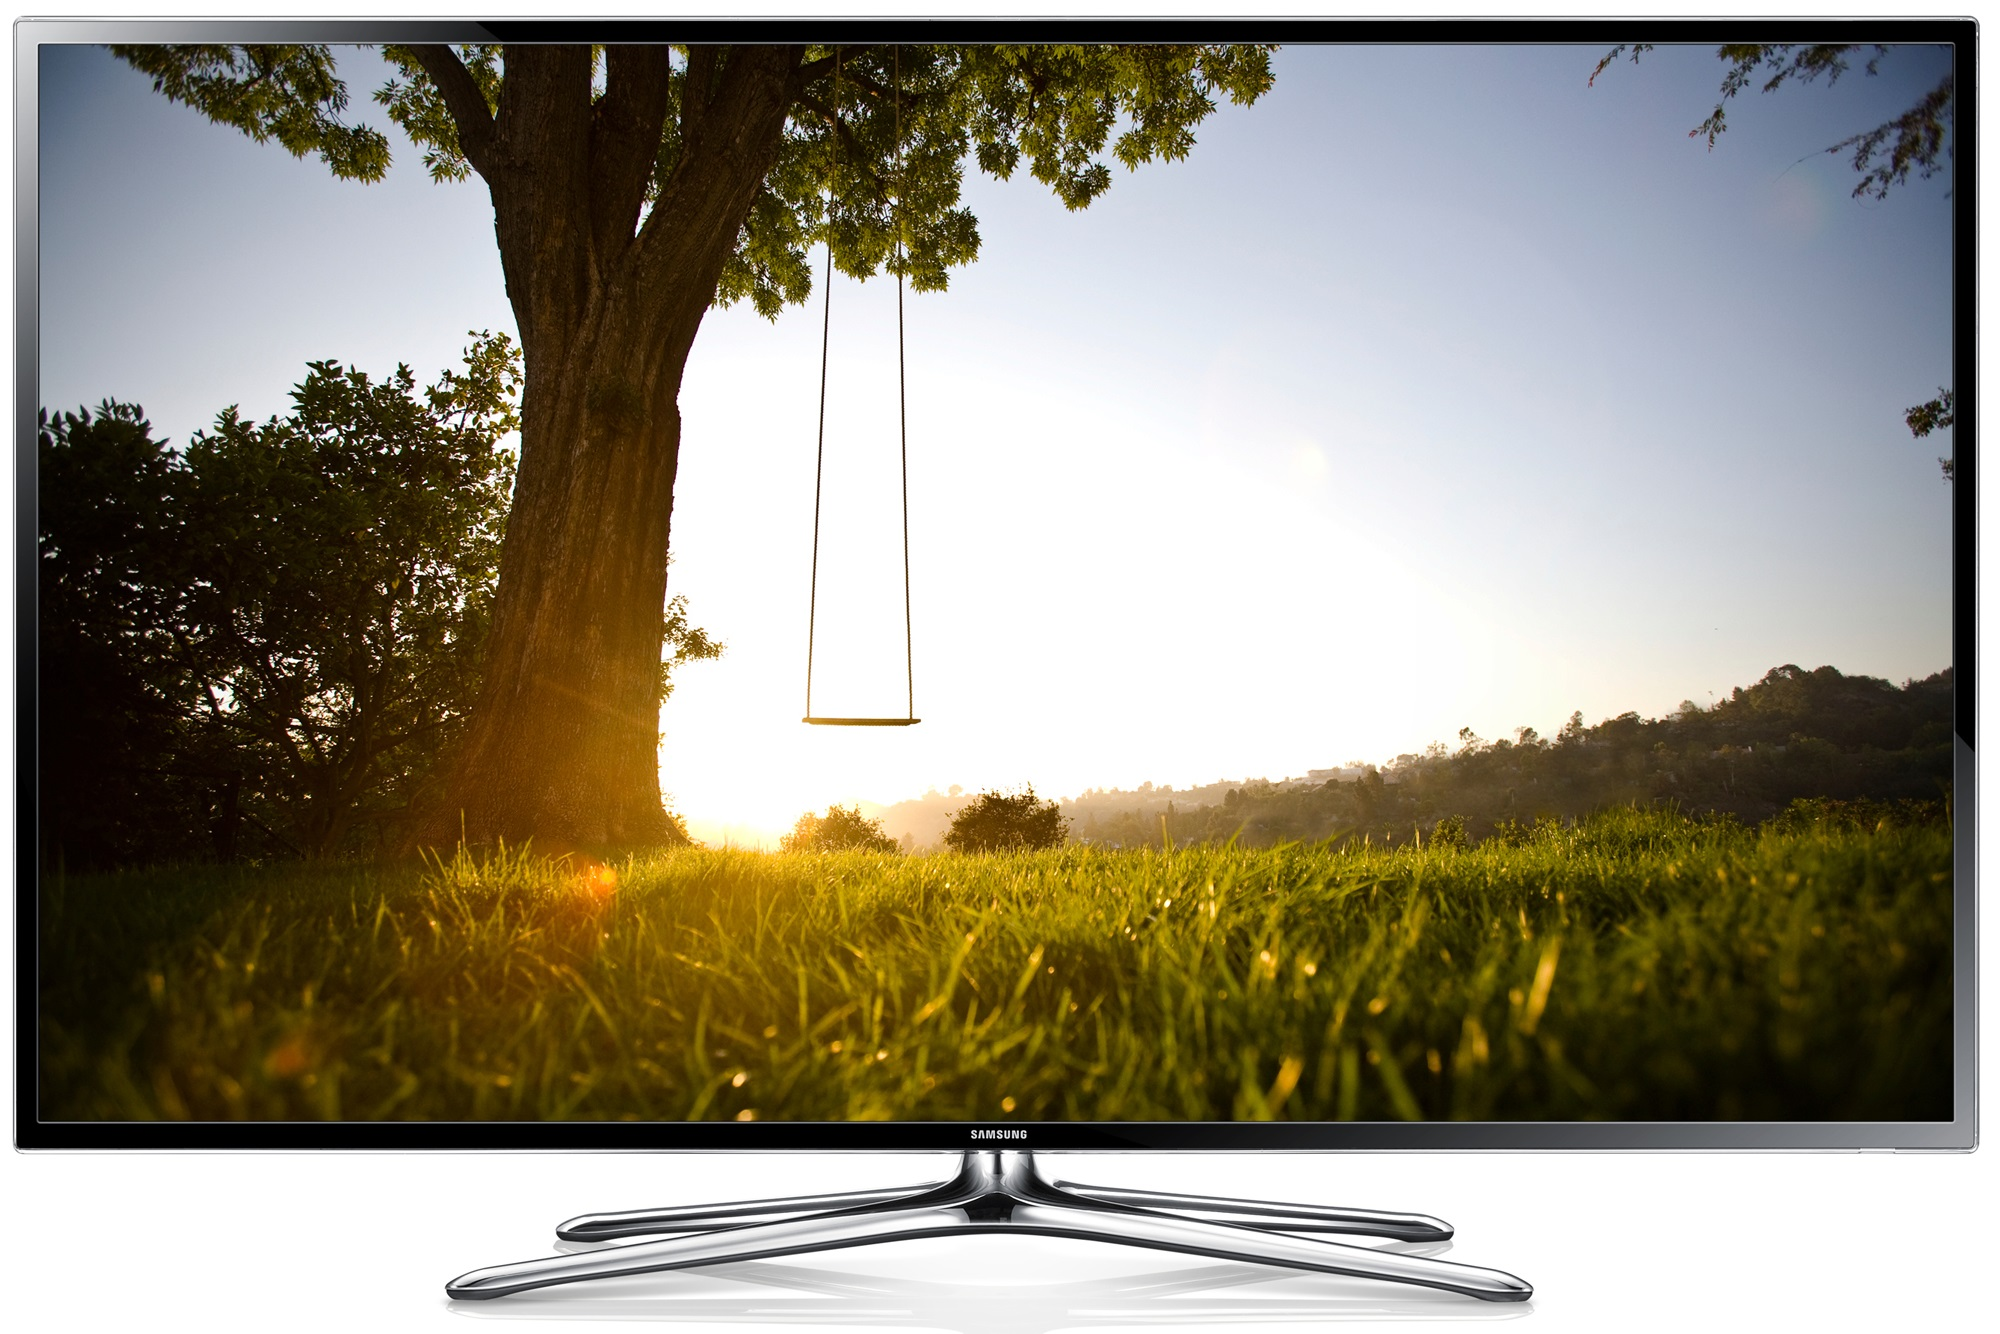 Samsung UE40F6400 Review Forum